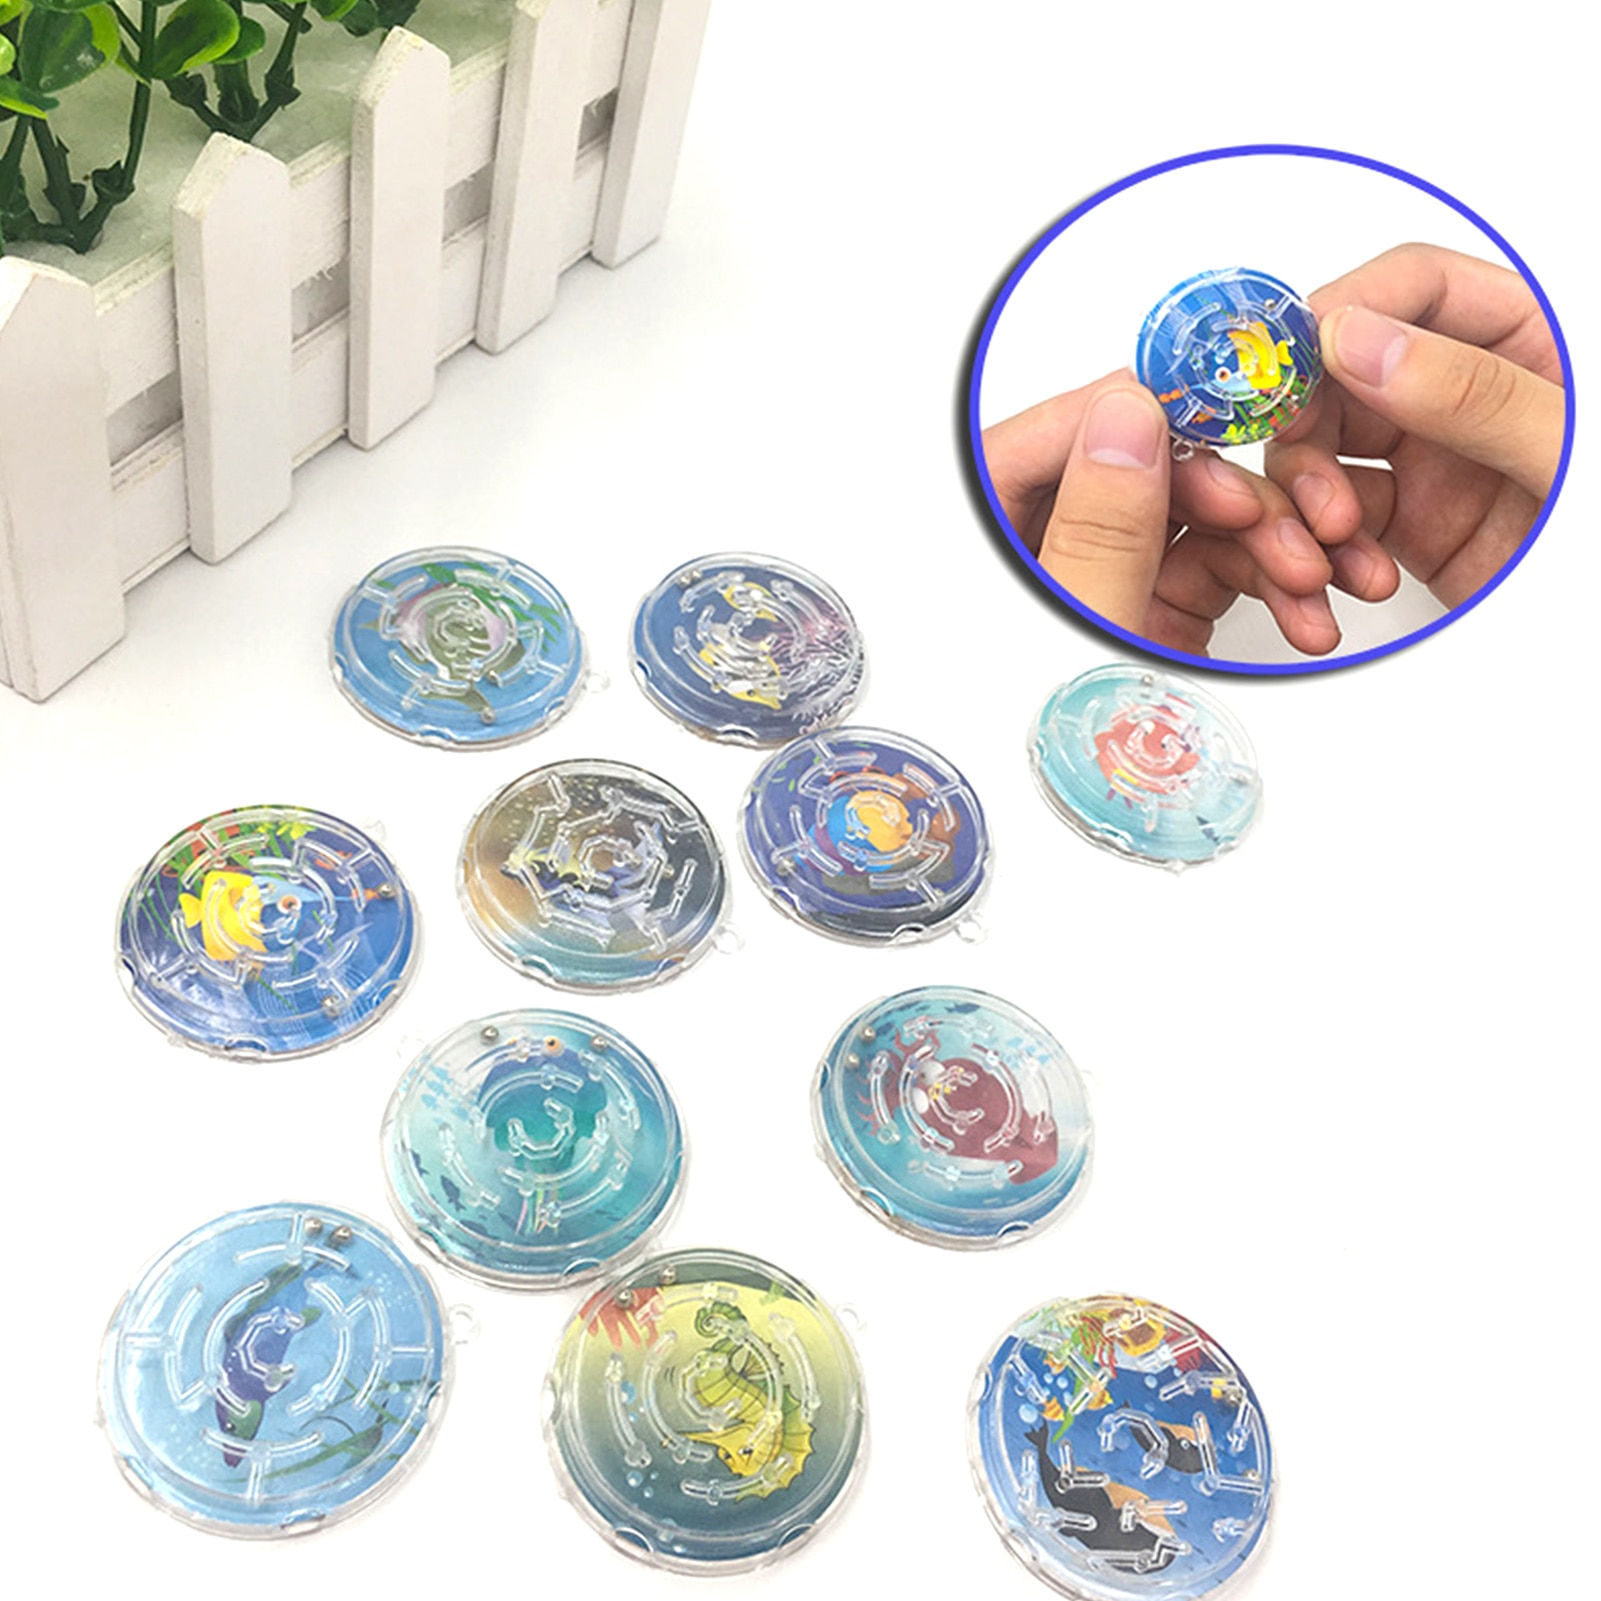 32pcs Sensory Fidget Toy Set Non-toxic Noodle Rope Ball Labyrinth Pinch Ball Stress Relief Toys Bundle For Teens Adults enlarge